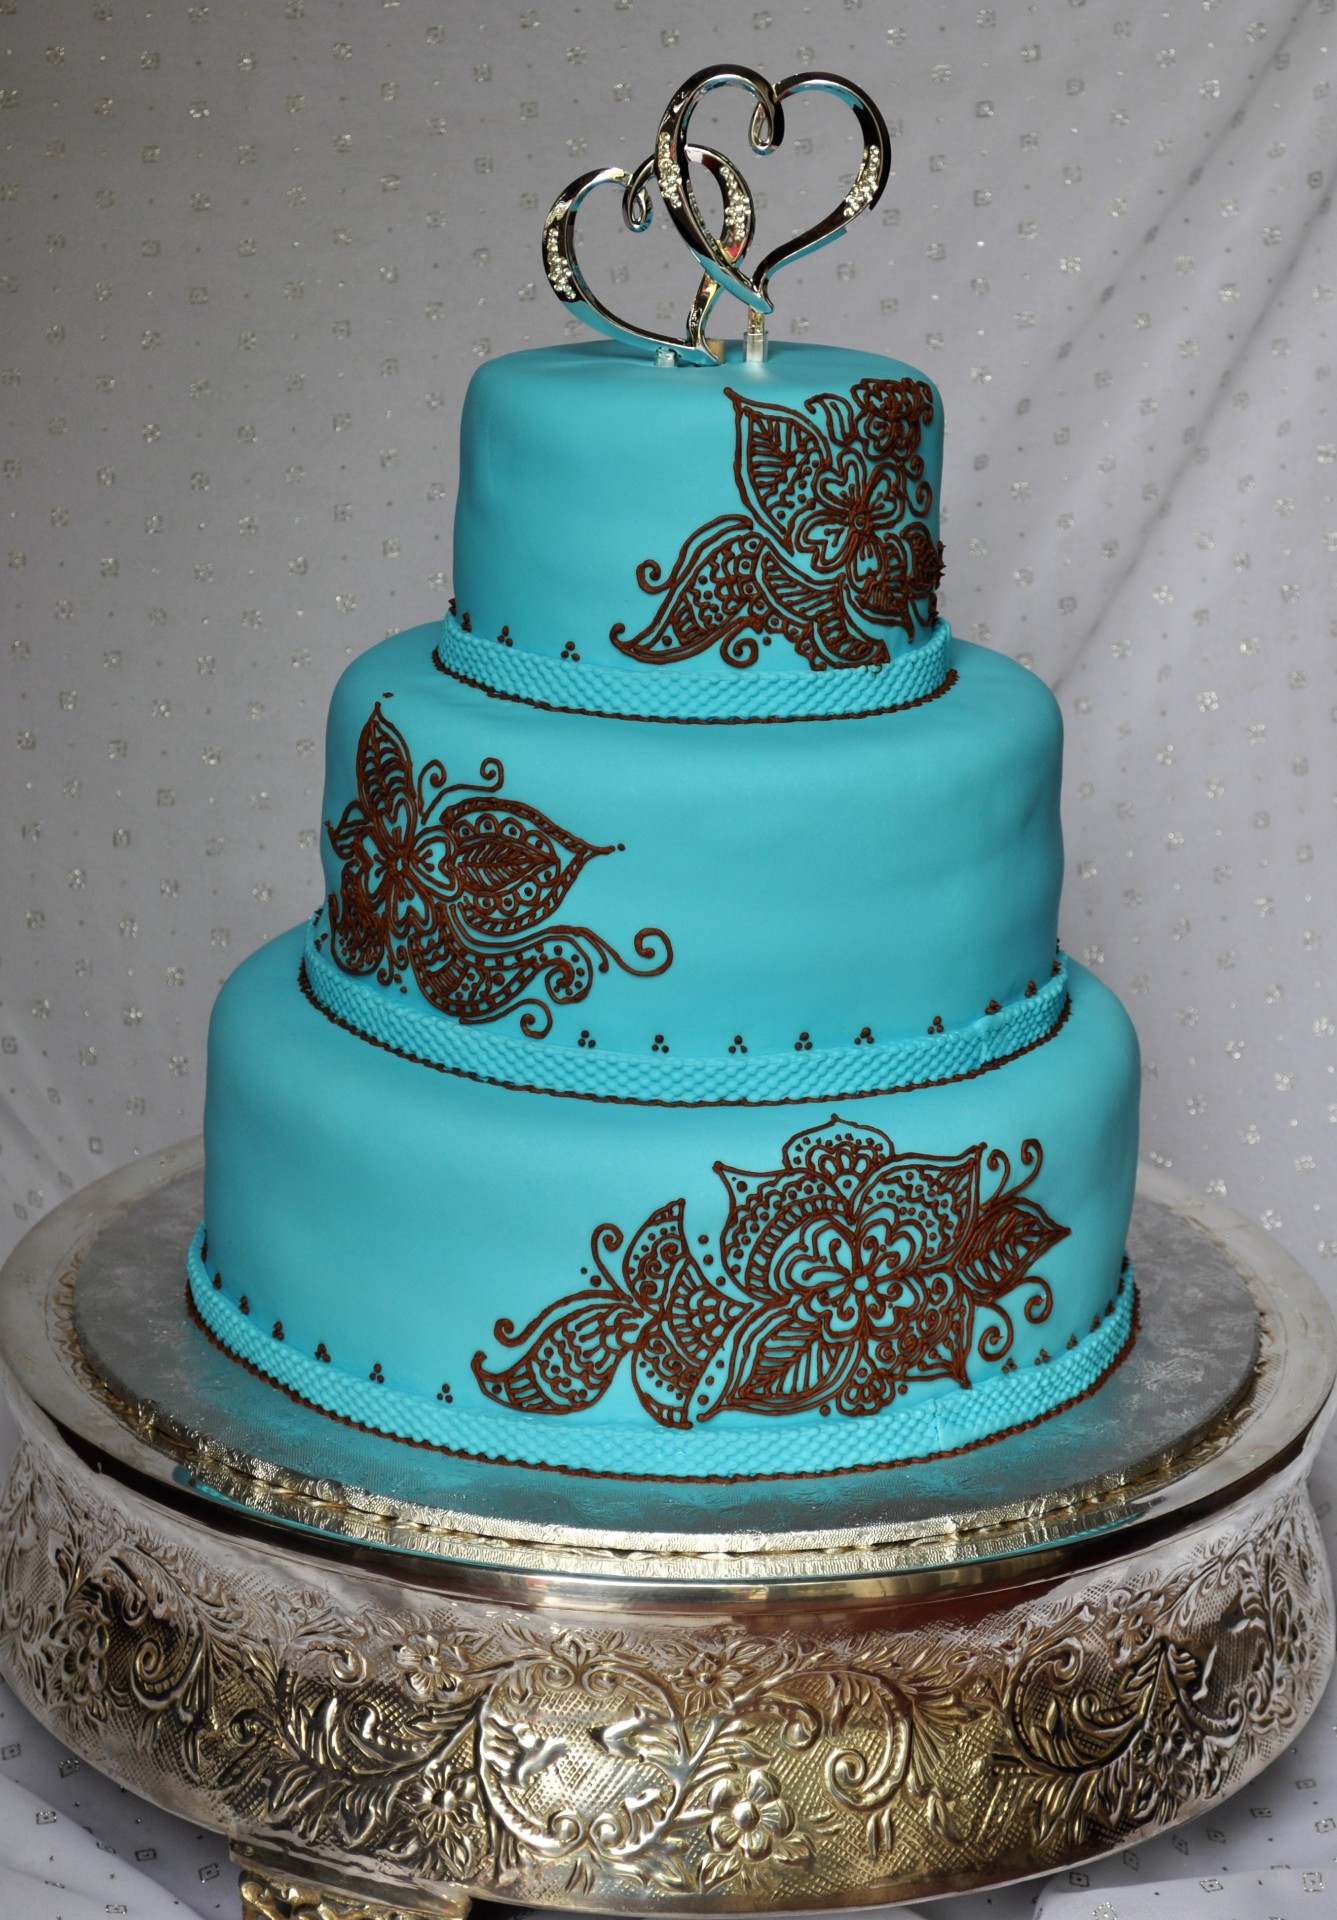 Blue fondant with brown henna piping